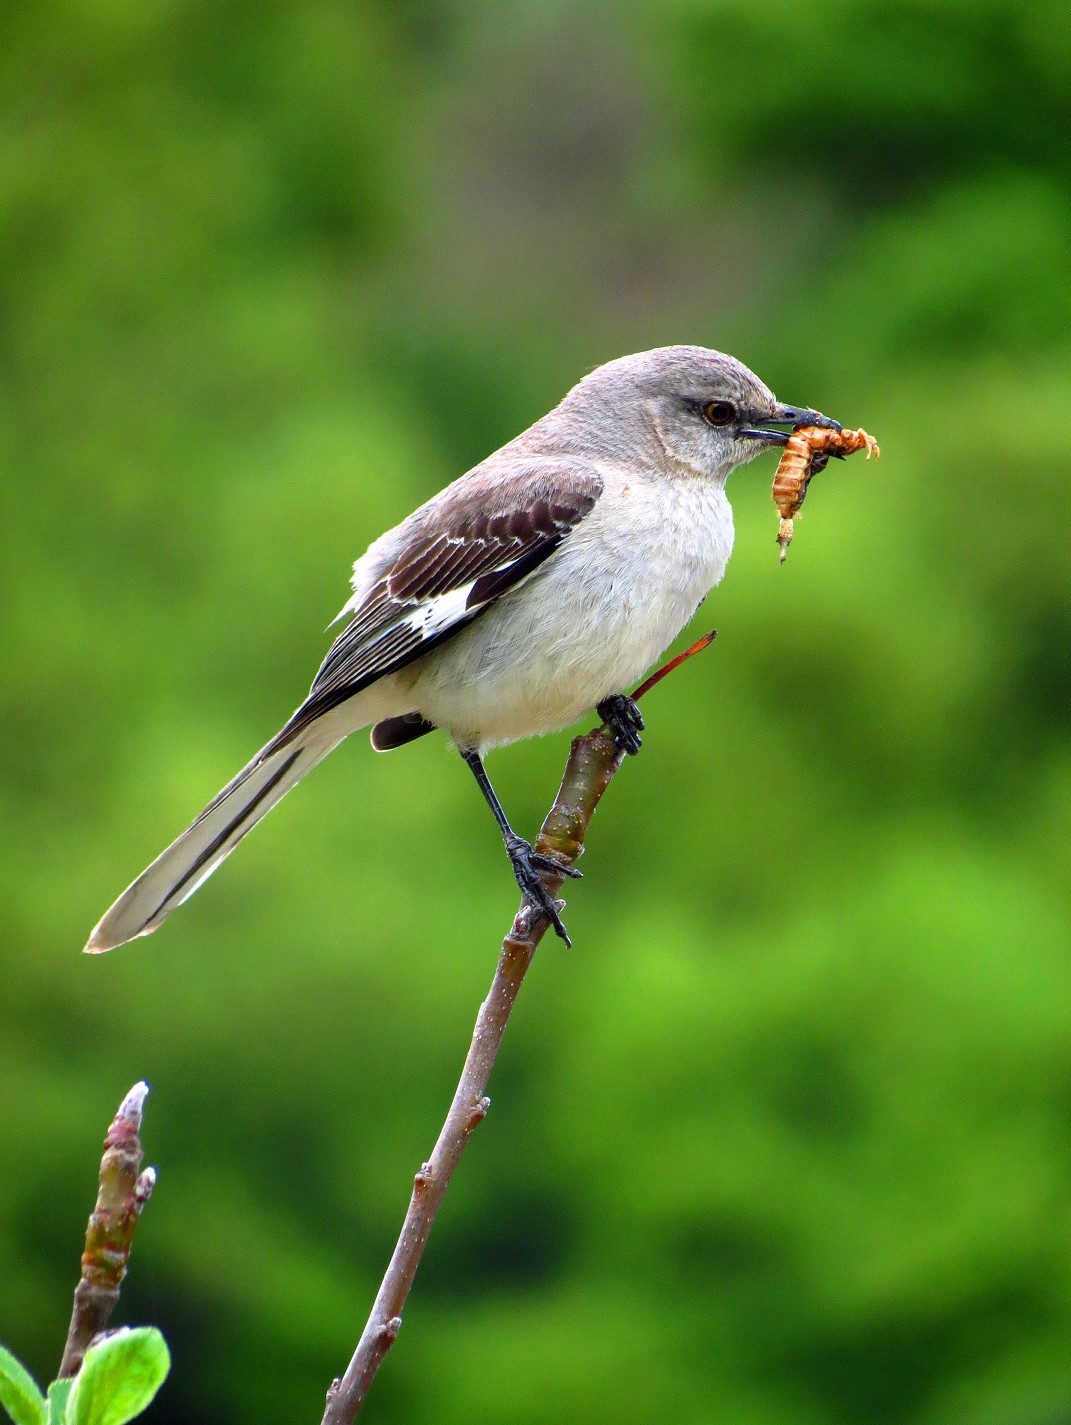 Mockingbird with food for its hatchlings